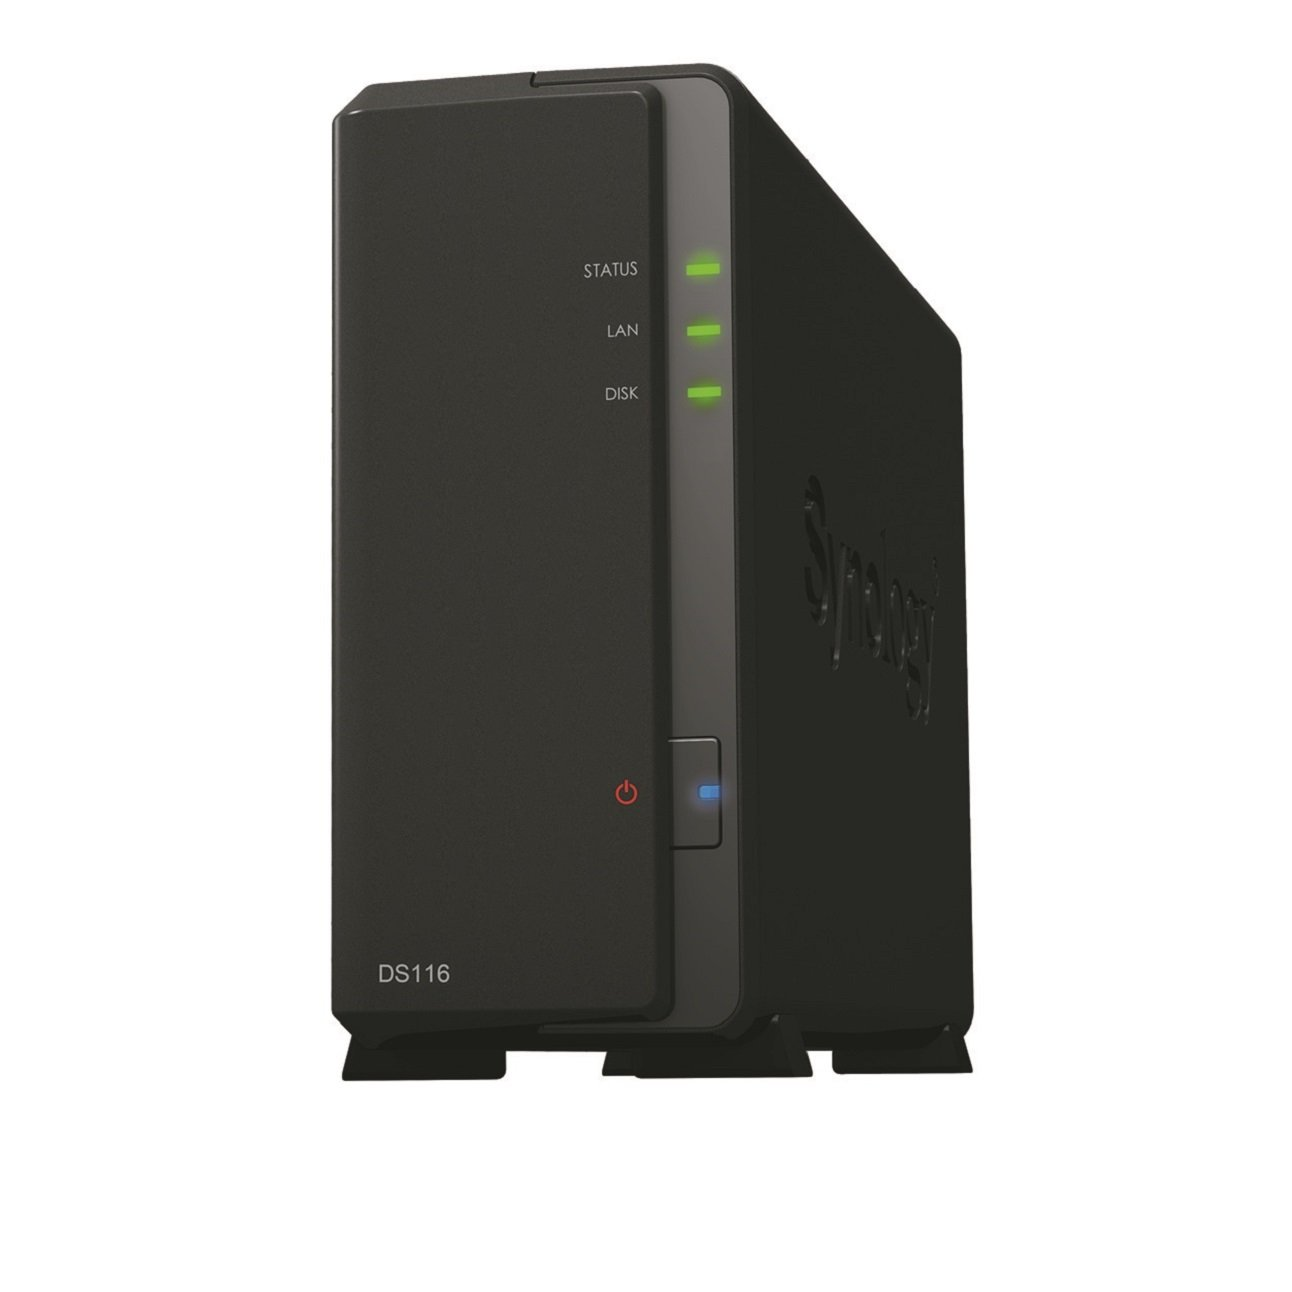 Synology Serie Value DS116 - Dispositivo de Almacenamiento en Red (GB, 2 Puertos USB 3.0, 1 Puerto LAN Gigabit), Negro